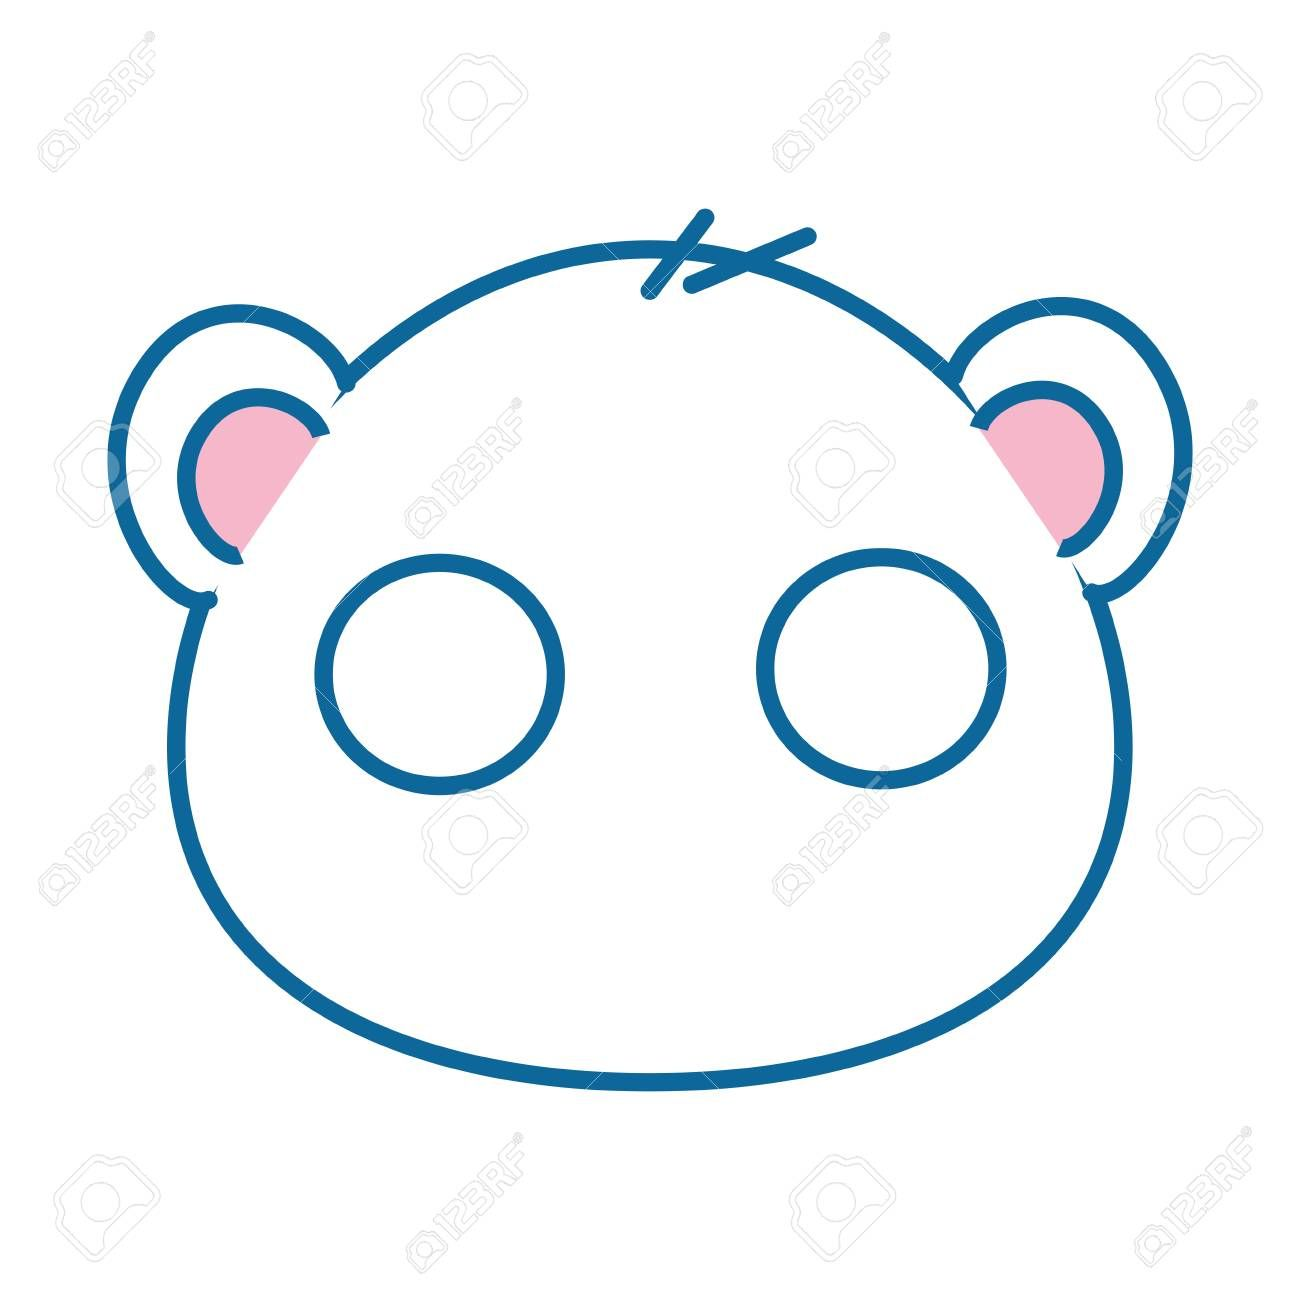 Isolated Cute Mouse Face Icon Vector Illustration Graphic Design Ad Mouse Face Isolated Cute Icon Face Icon Cute Mouse Vector Illustration